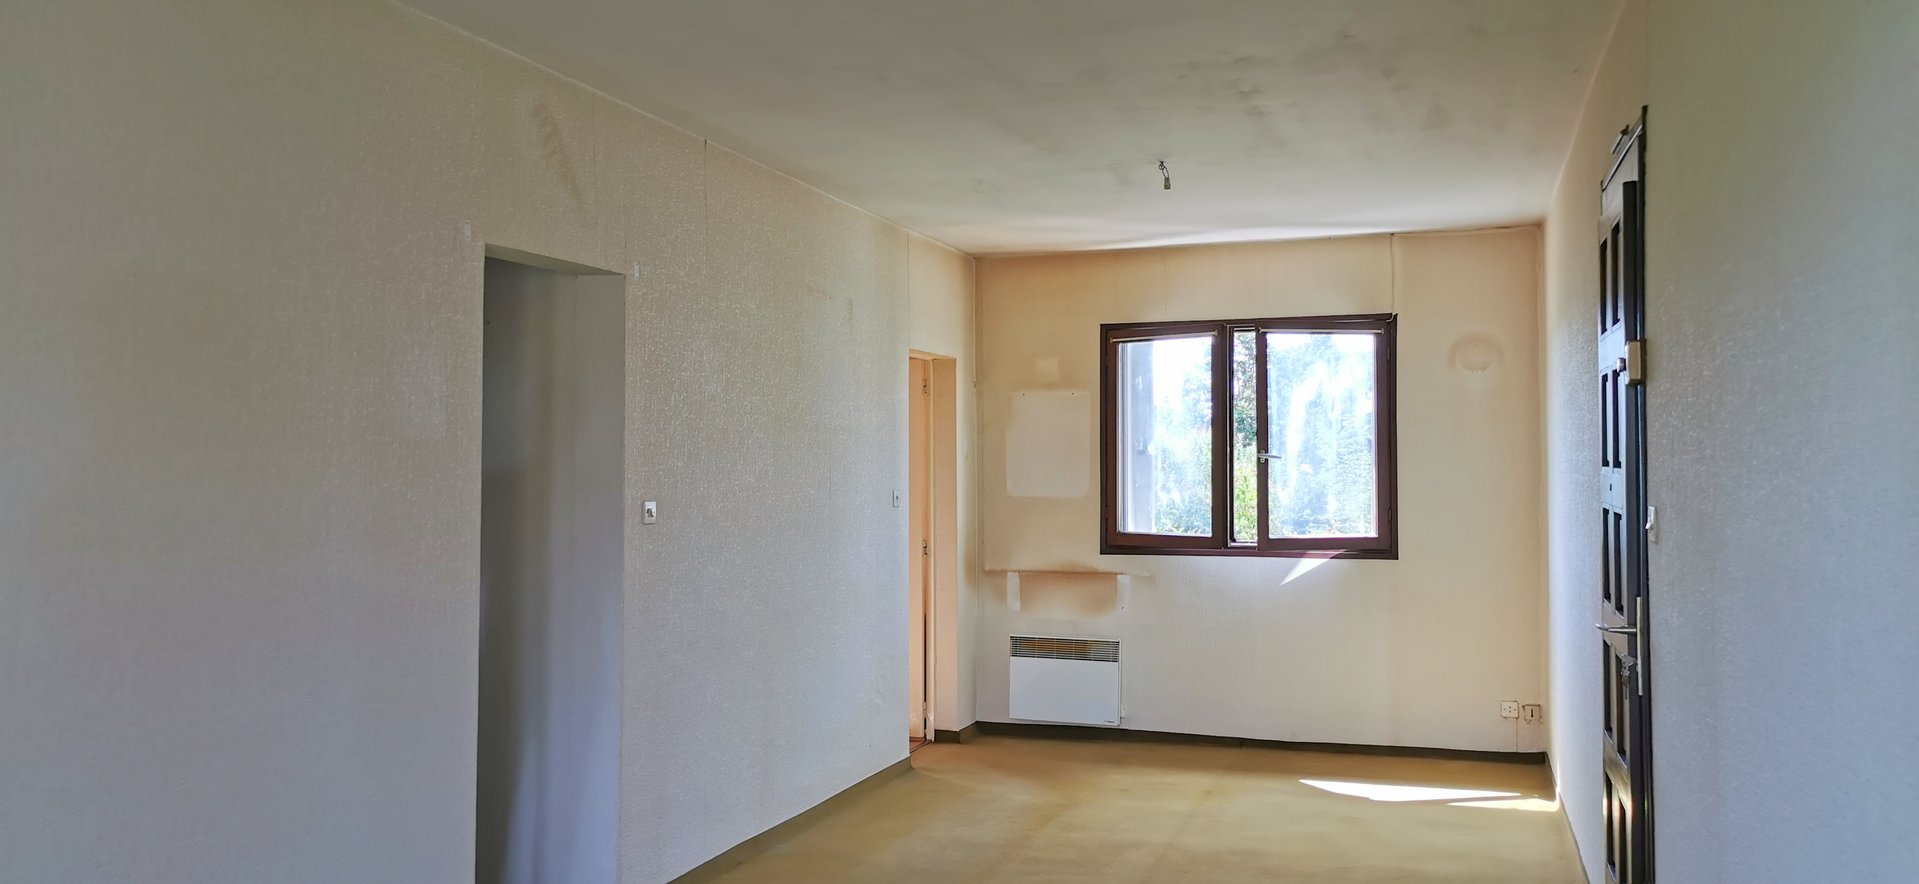 Appartement T2 de 45.75 m² avec cellier parking